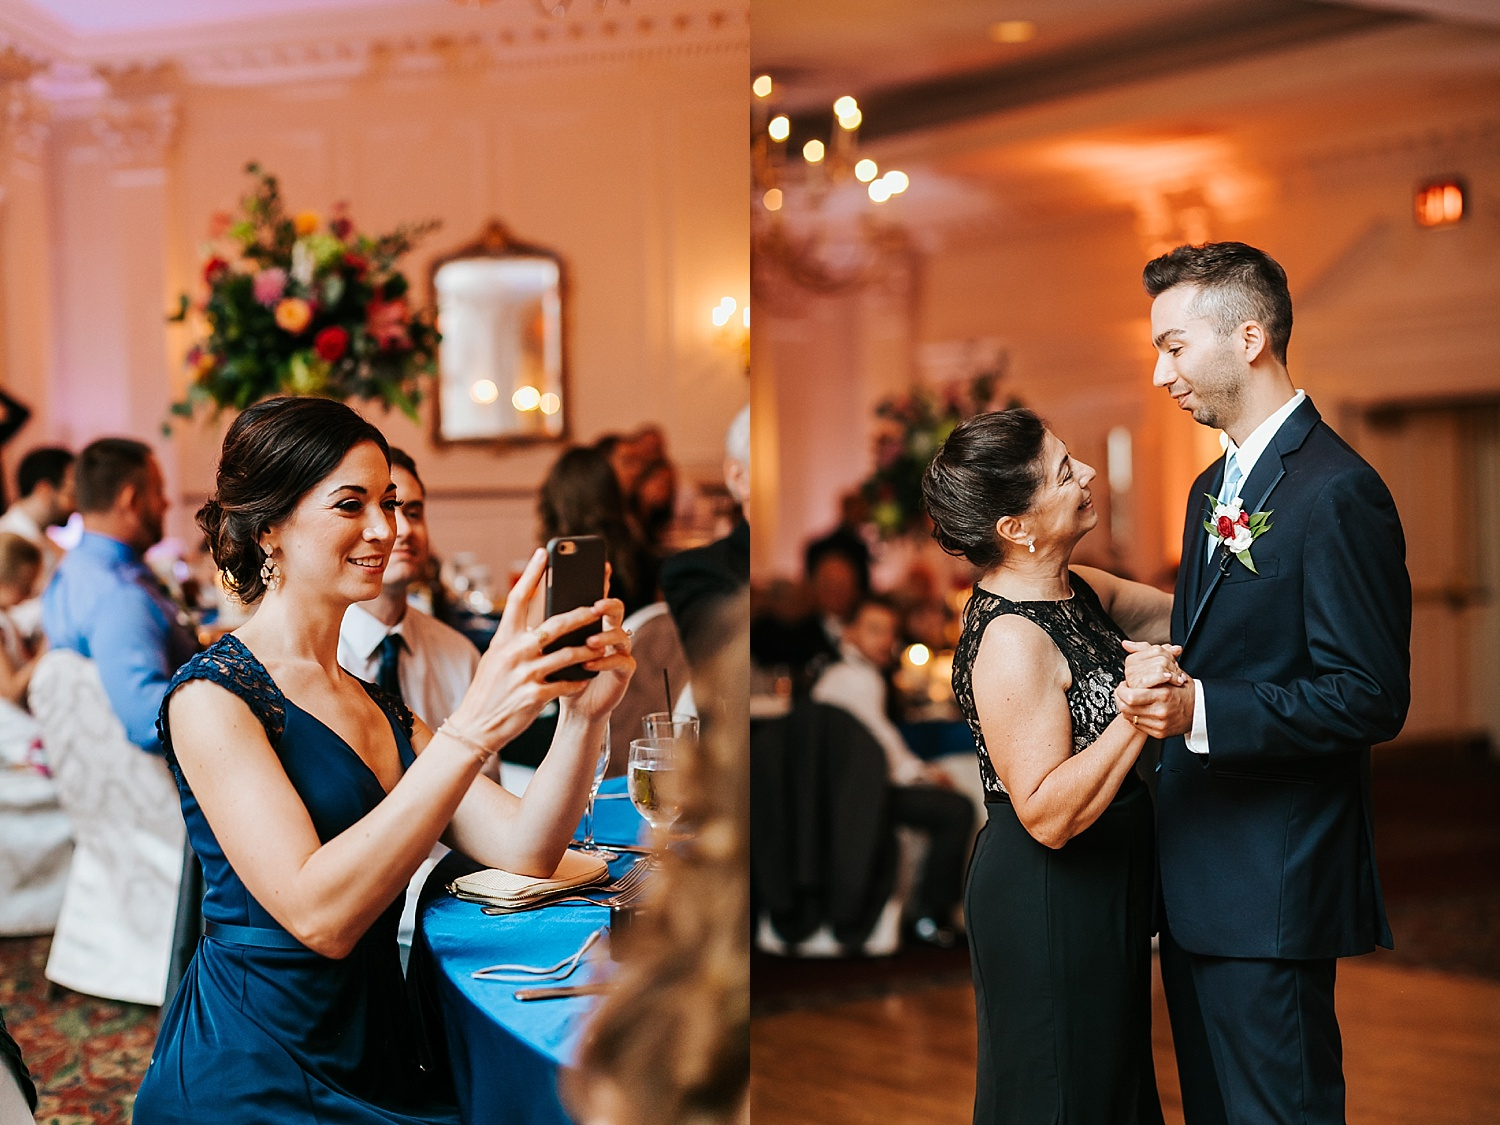 Summer wedding at the desmond by danfredo photos + films